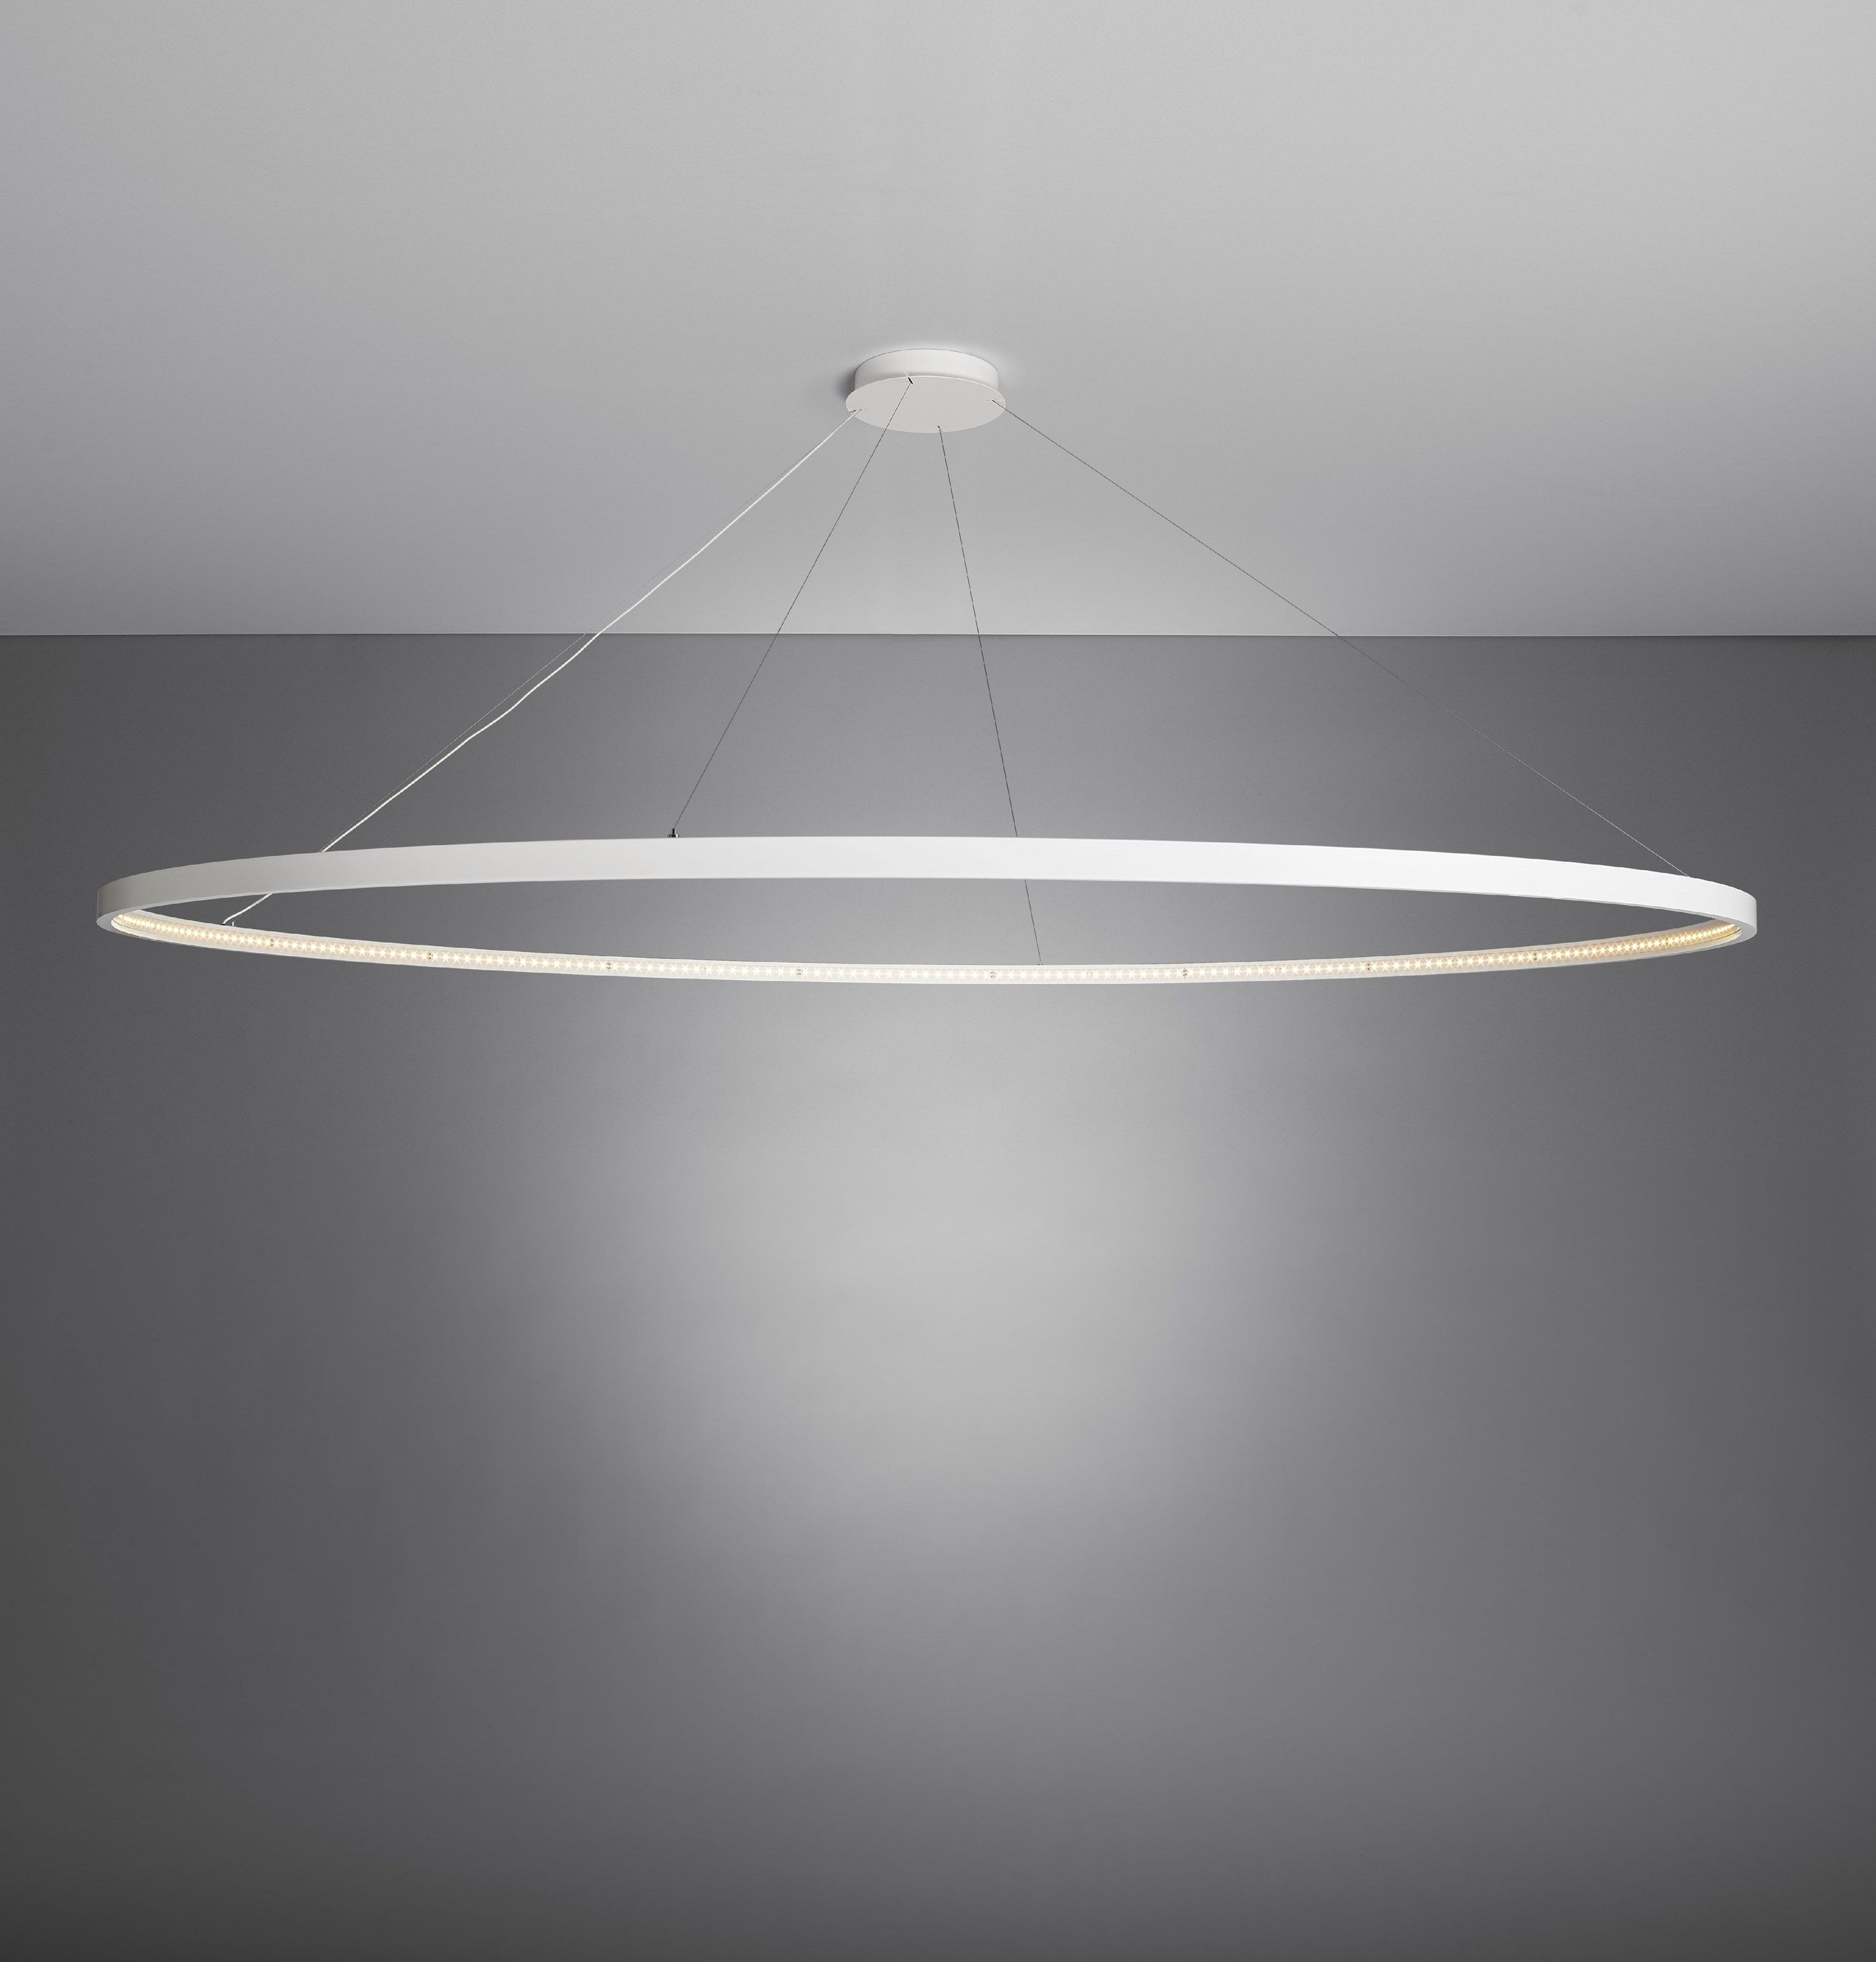 LED DIRECT-INDIRECT LIGHT STEEL PENDANT LAMP OMEGA 200 BY LE DEUN LUMINAIRES & LED DIRECT-INDIRECT LIGHT STEEL PENDANT LAMP OMEGA 200 BY LE DEUN ...